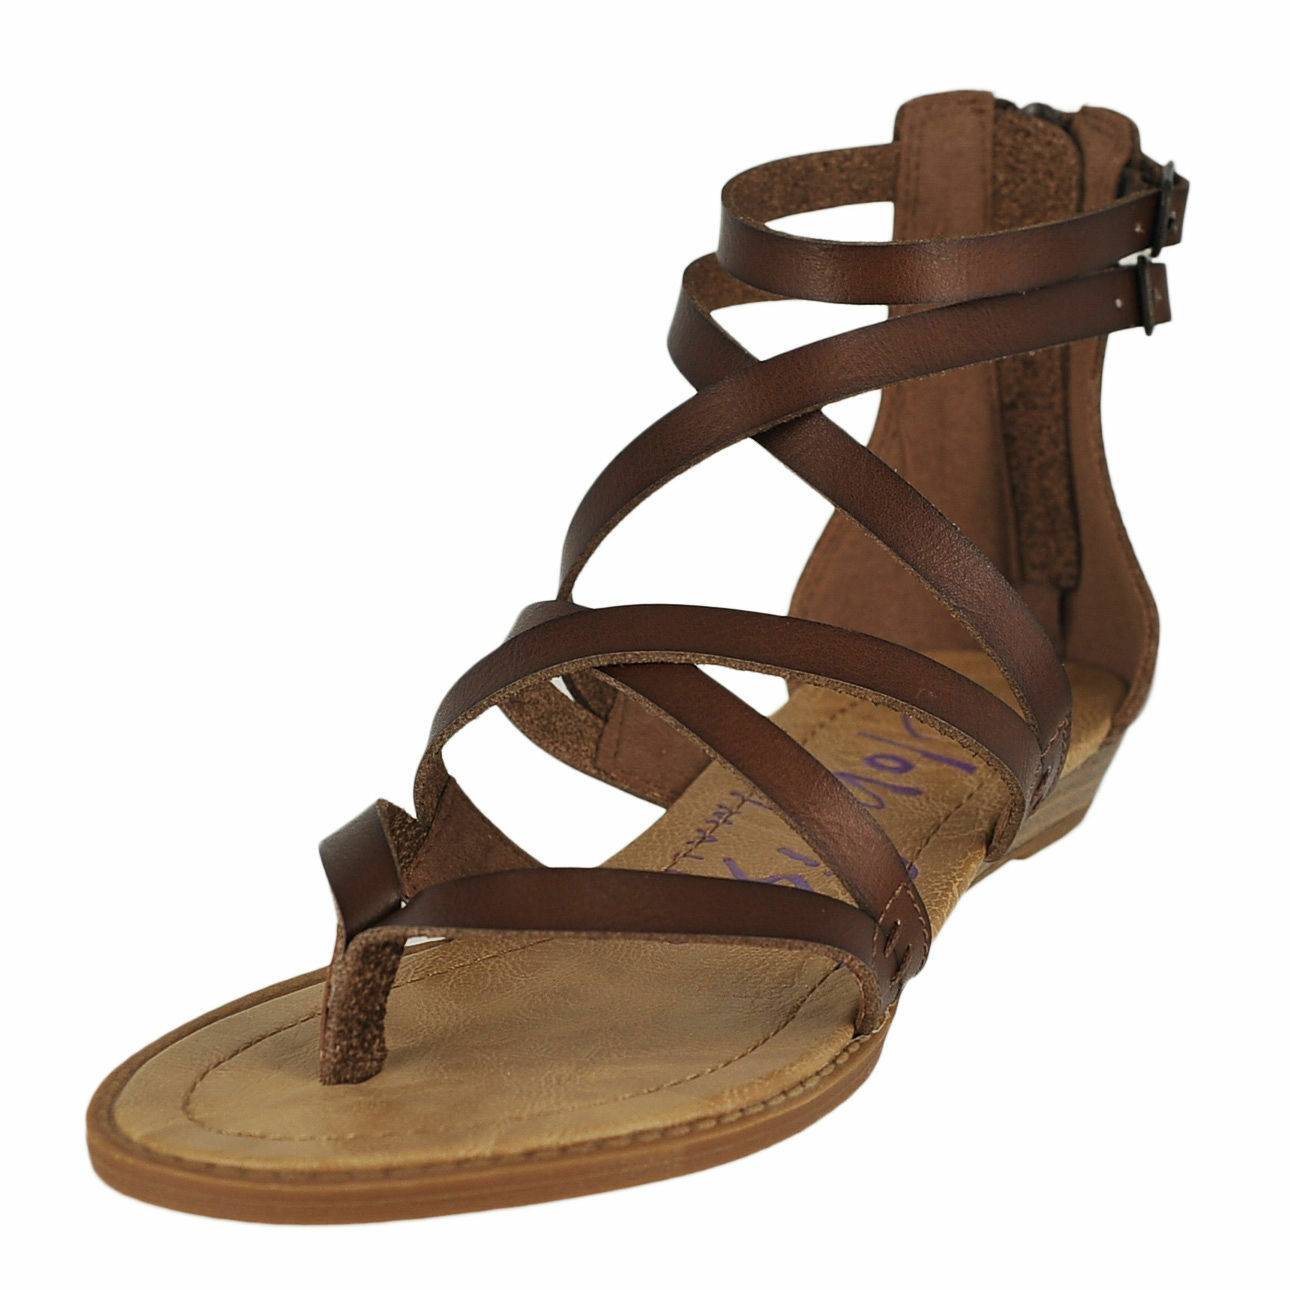 3eefada66 Women s Blowfish Bungalow Whiskey Gladiator Style Sandals Shoes 6